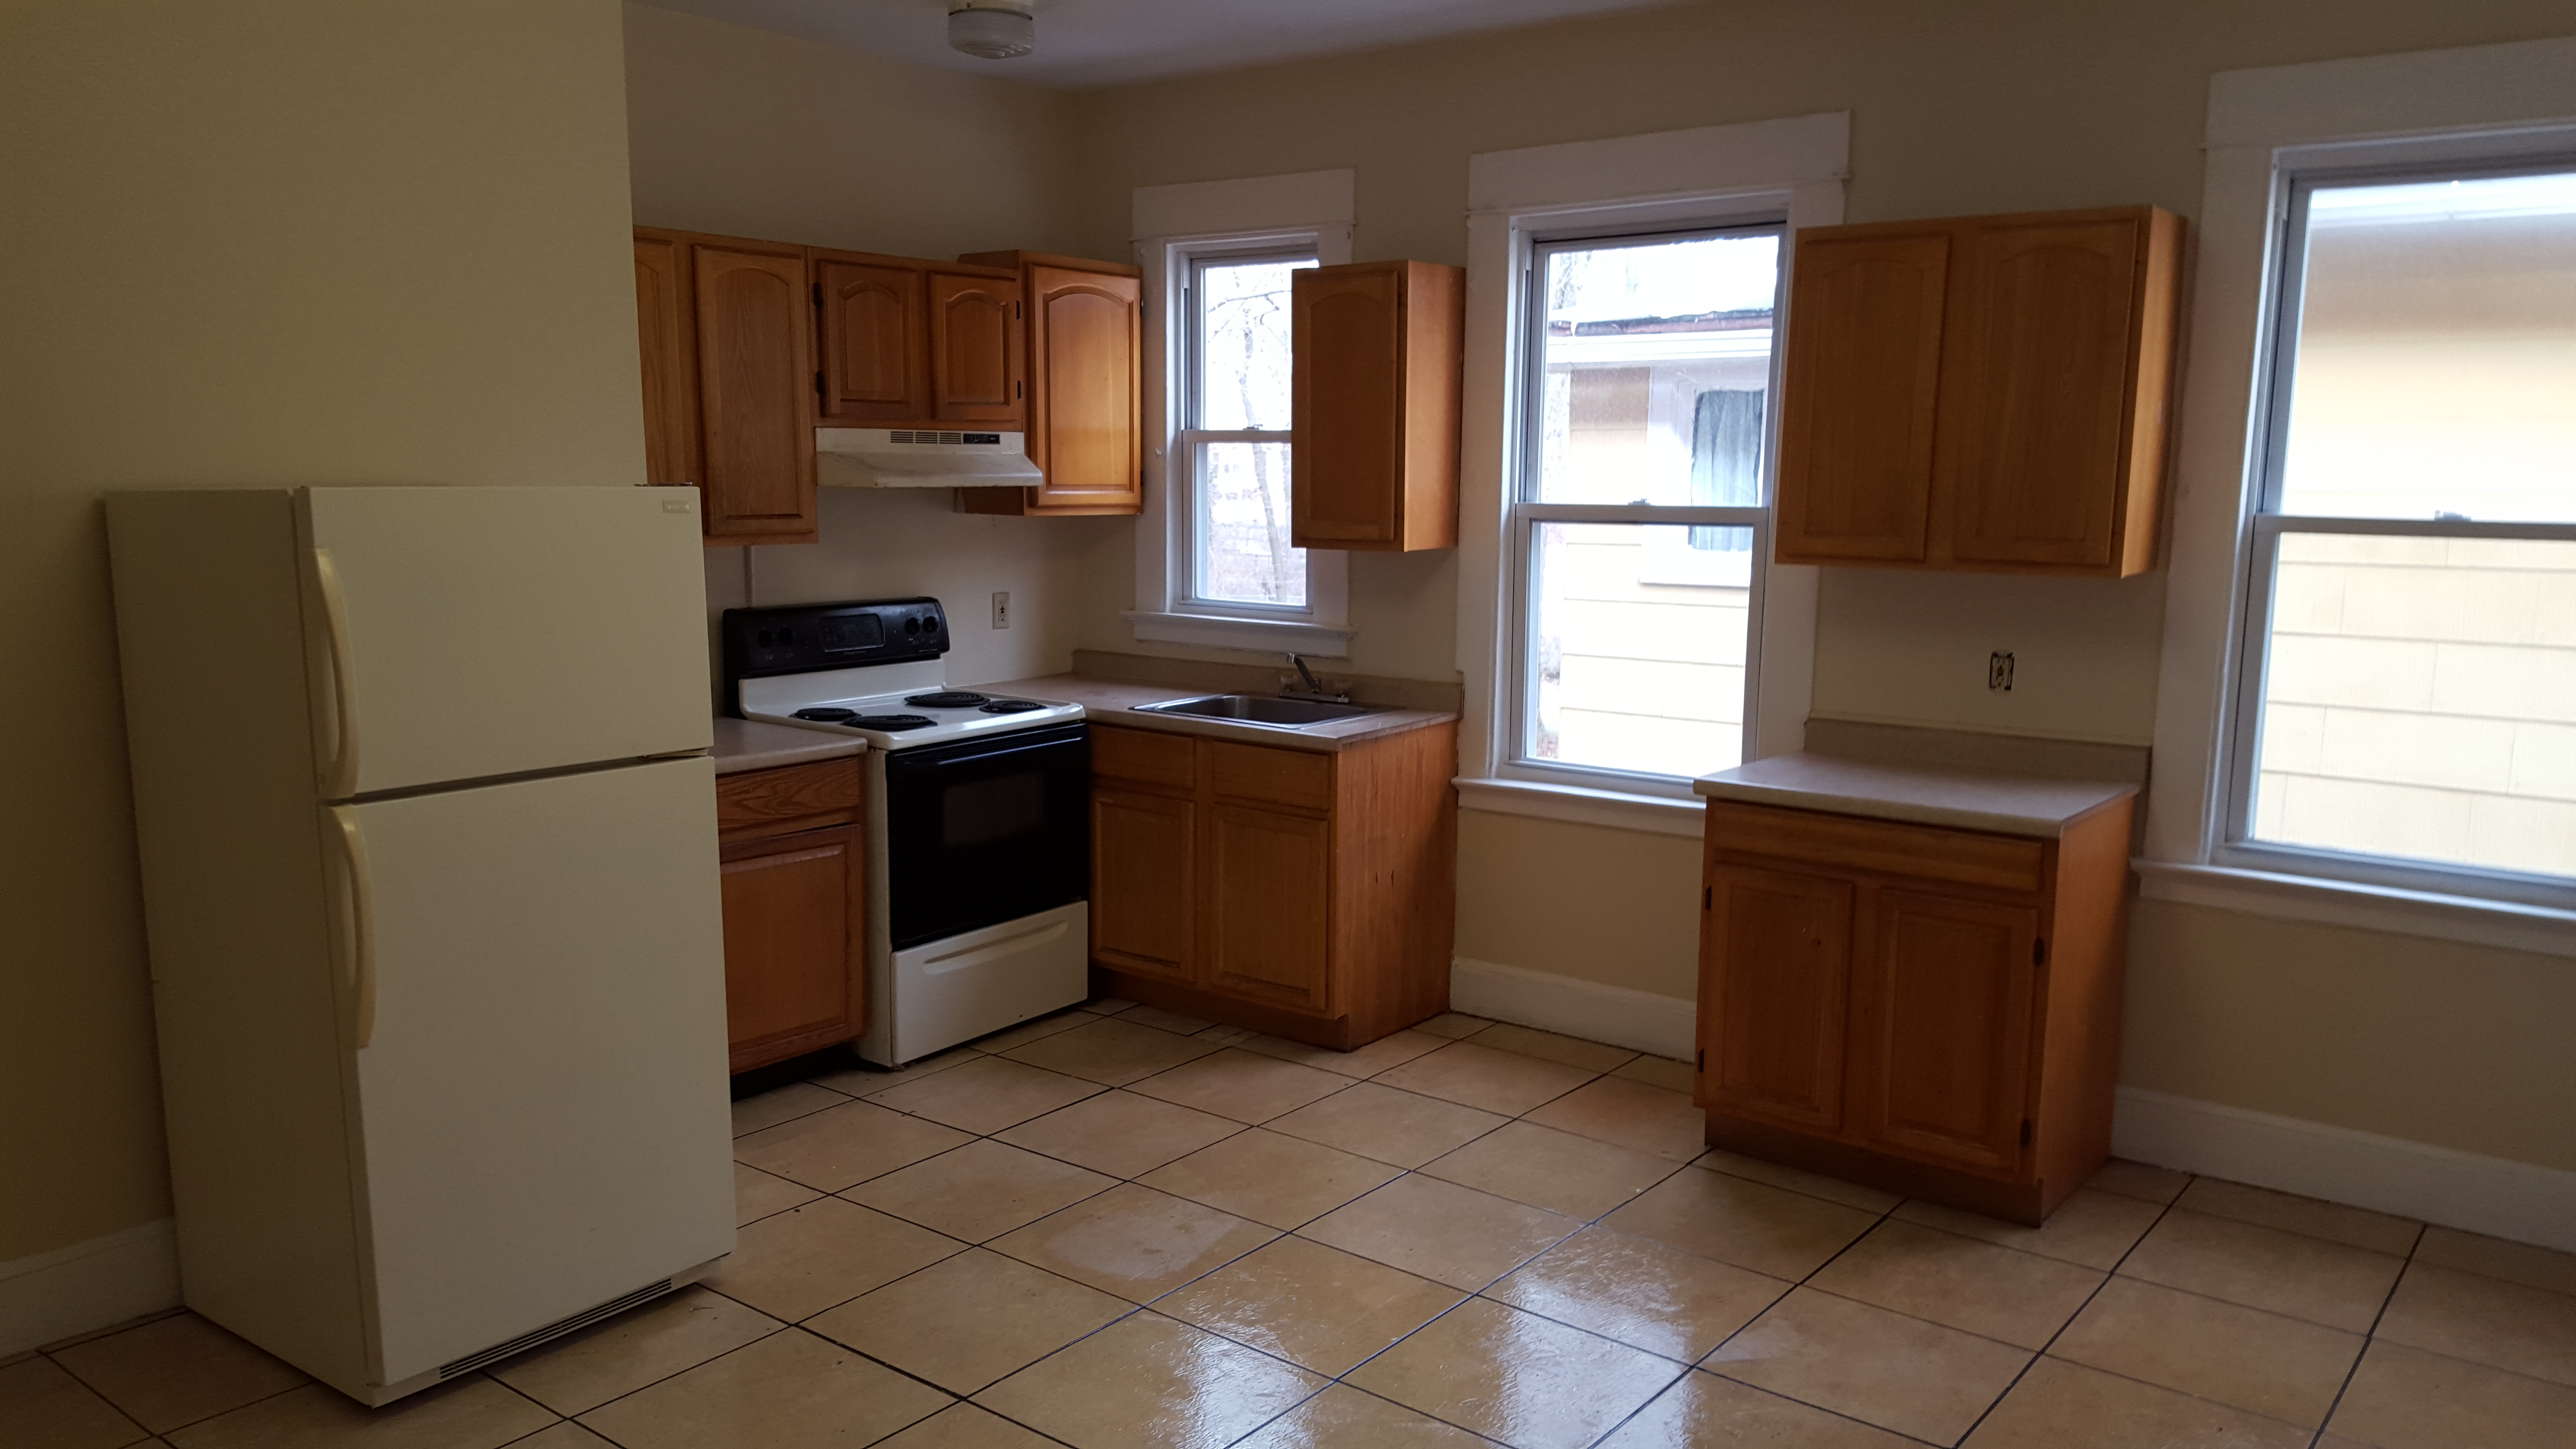 Three bedroom apartment located in 536 Winthrop Ave 2nd Fl Right